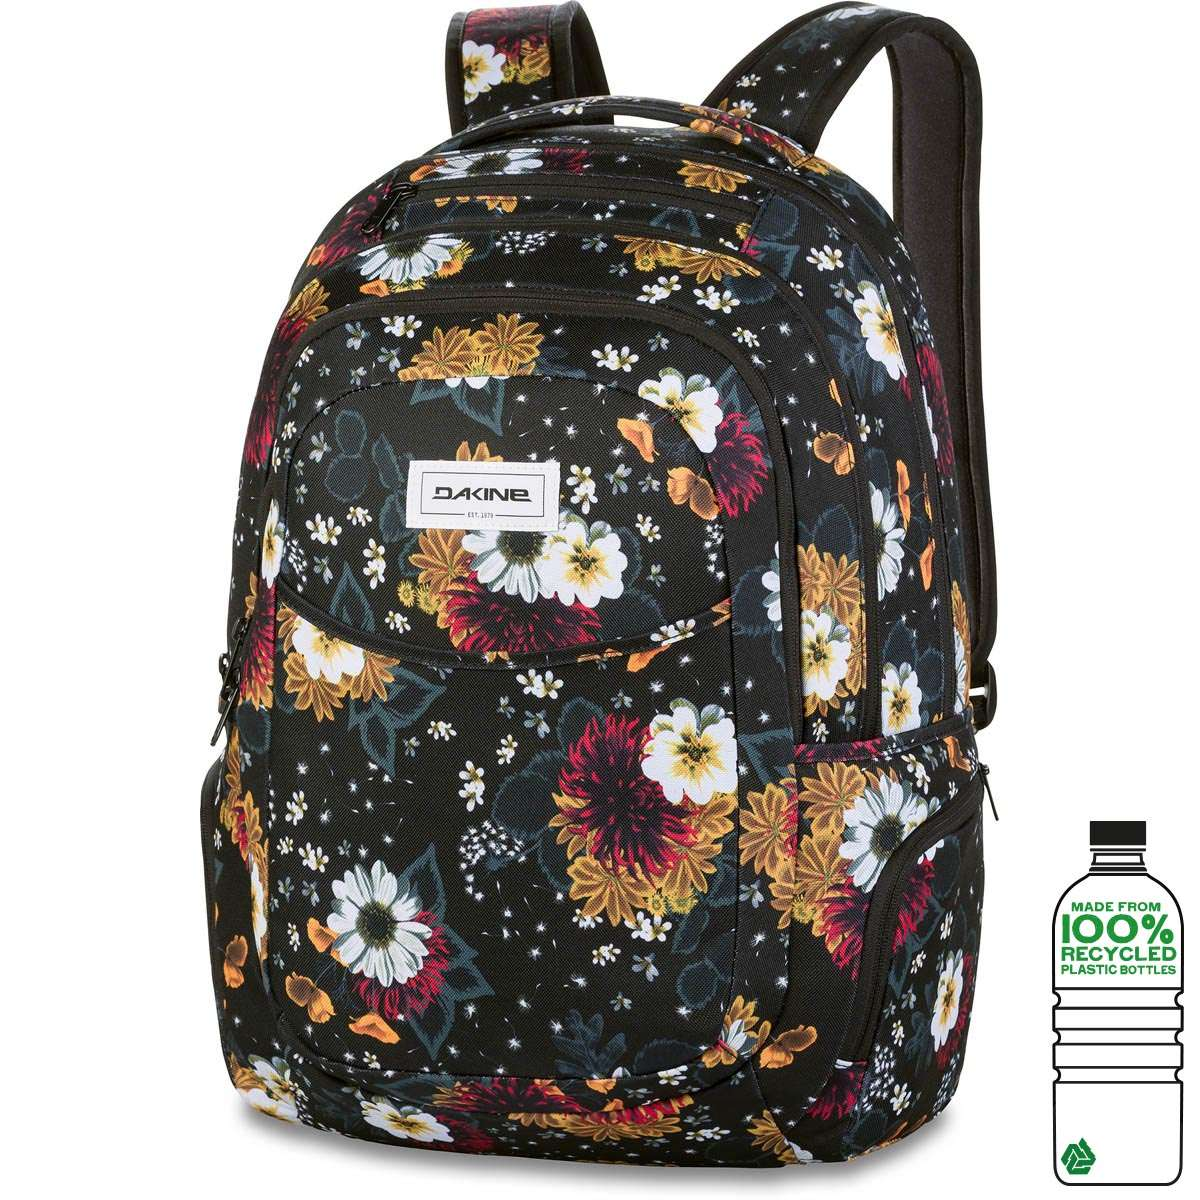 e67de0d0994fd Dakine Prom SR 27L Backpack Winter Daisy